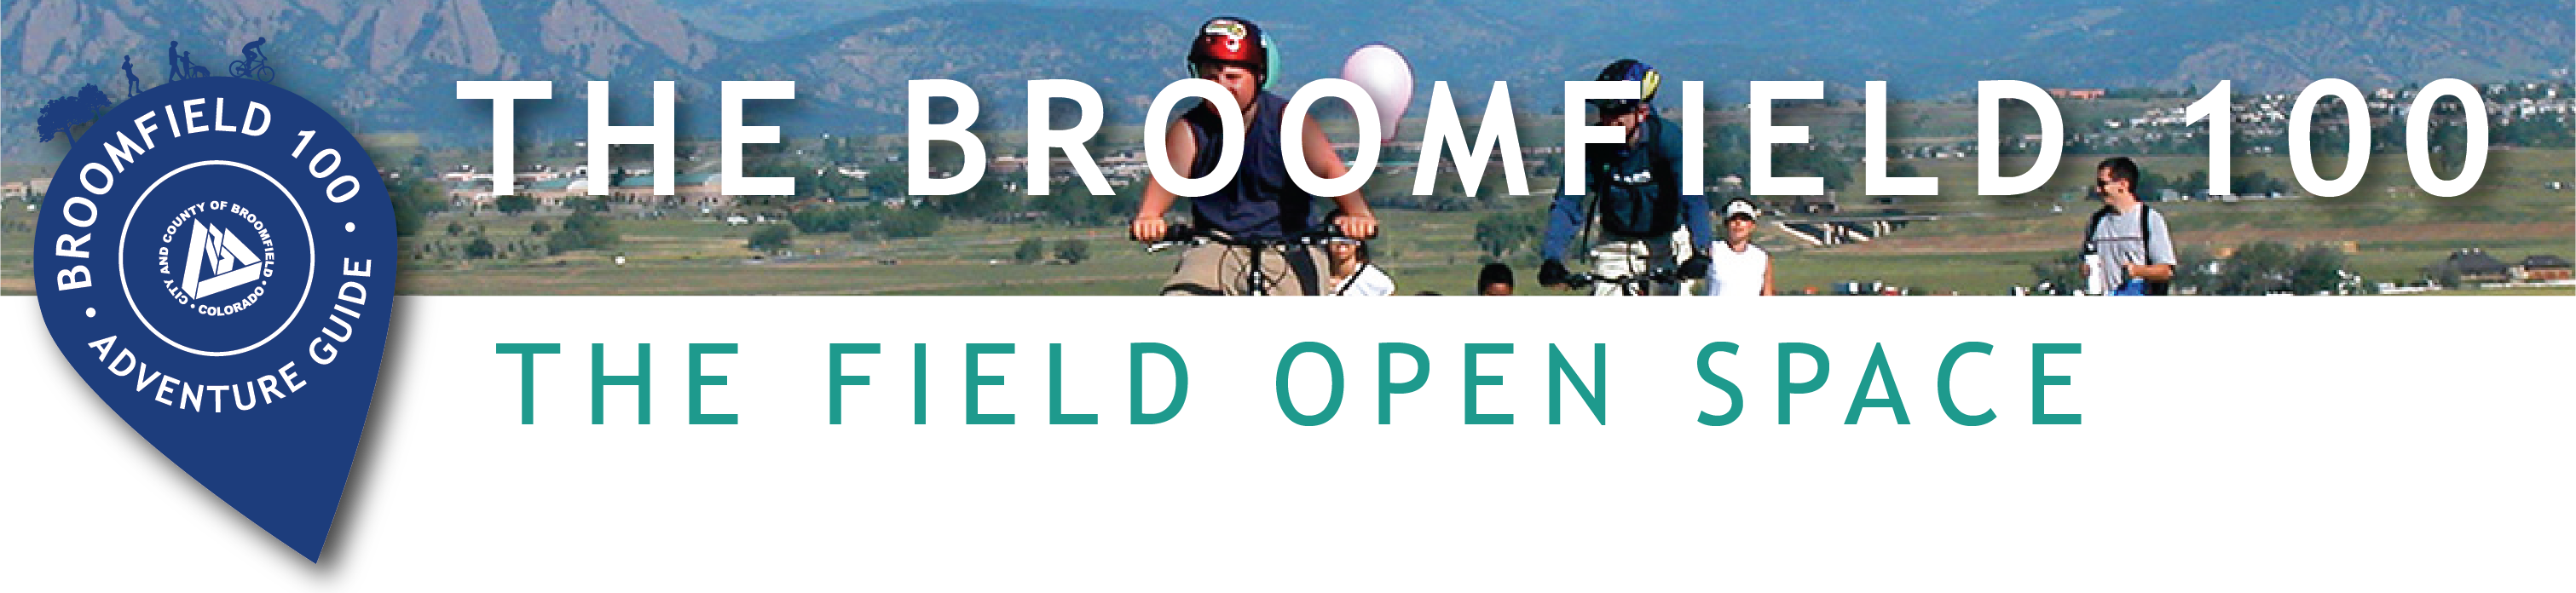 2019 Broomfield100 web banners_the field open space